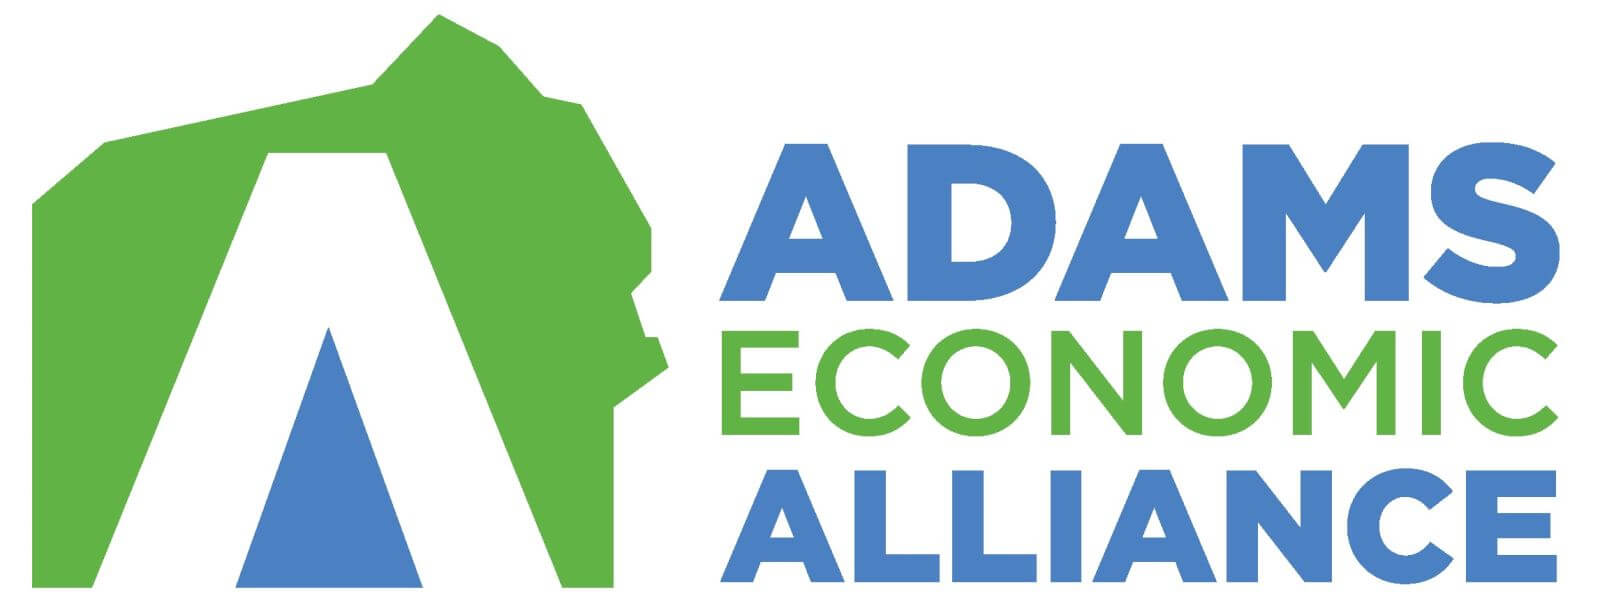 Adams Economic Alliance in Gettysburg, PA